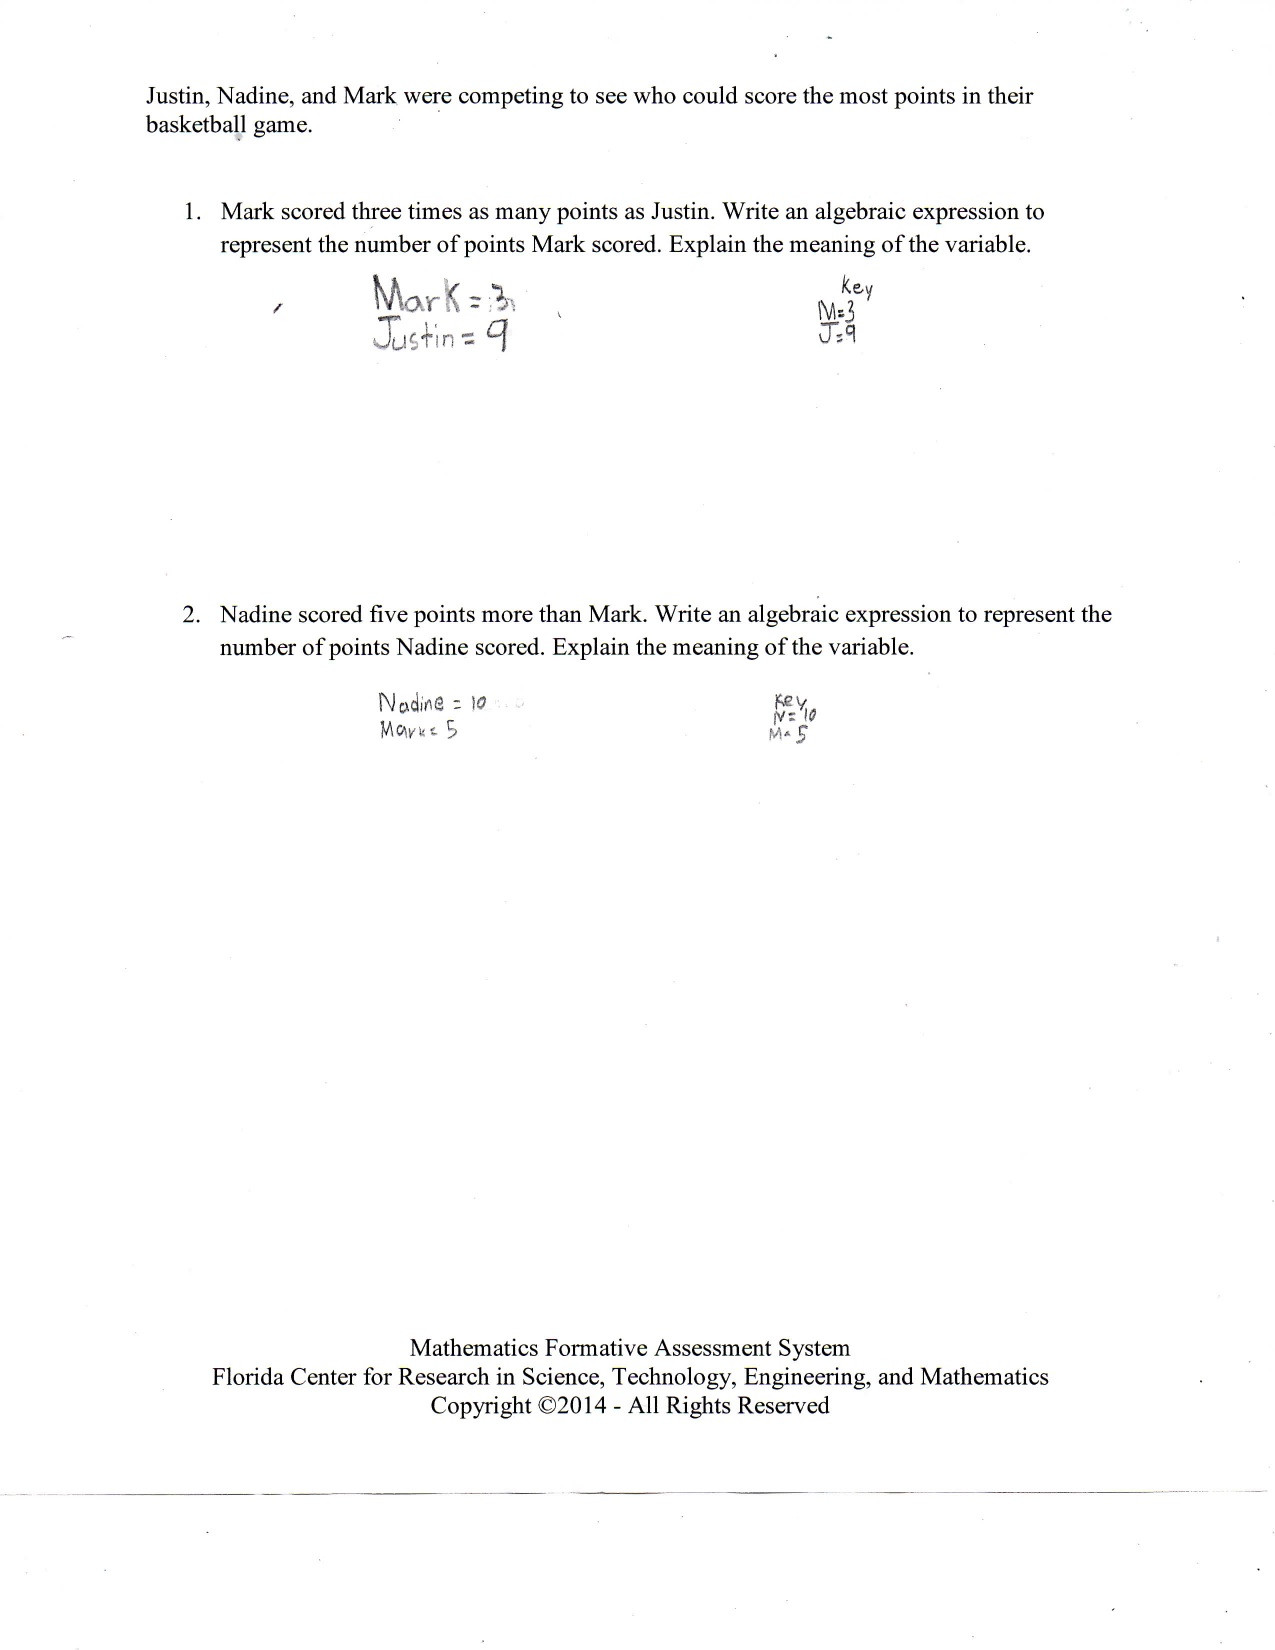 Writing and Evaluating Expressions Worksheet Mathematical Expressions Worksheets